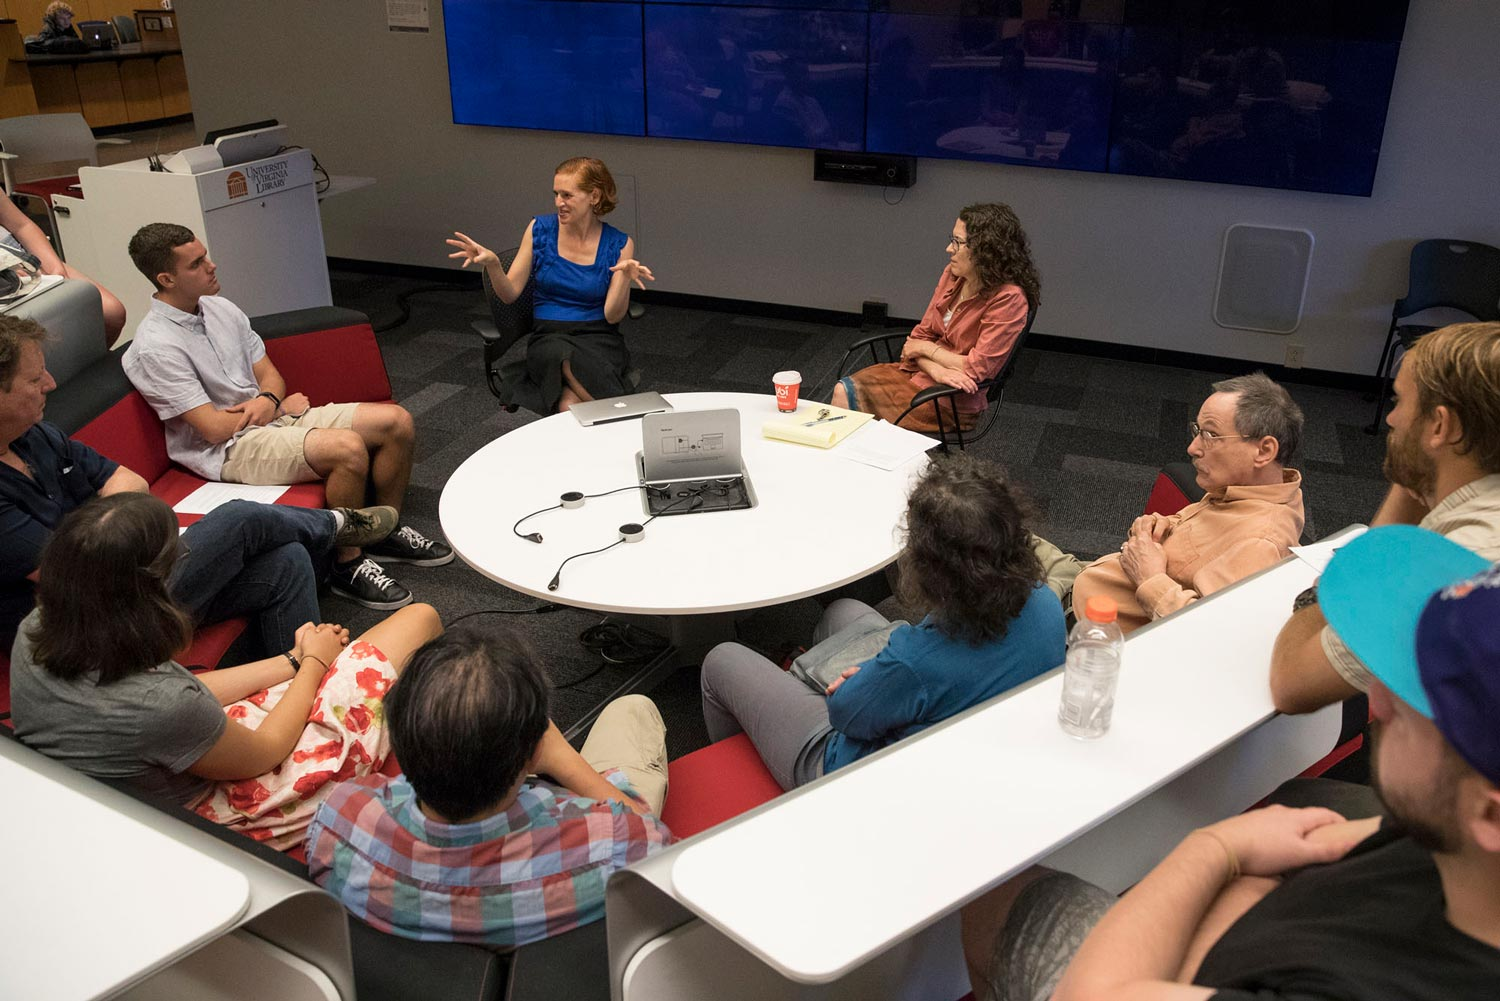 Rachel Wahl, an assistant professor in the Curry School of Education, led a discussion on activism before sessions were suspended on Aug. 12.